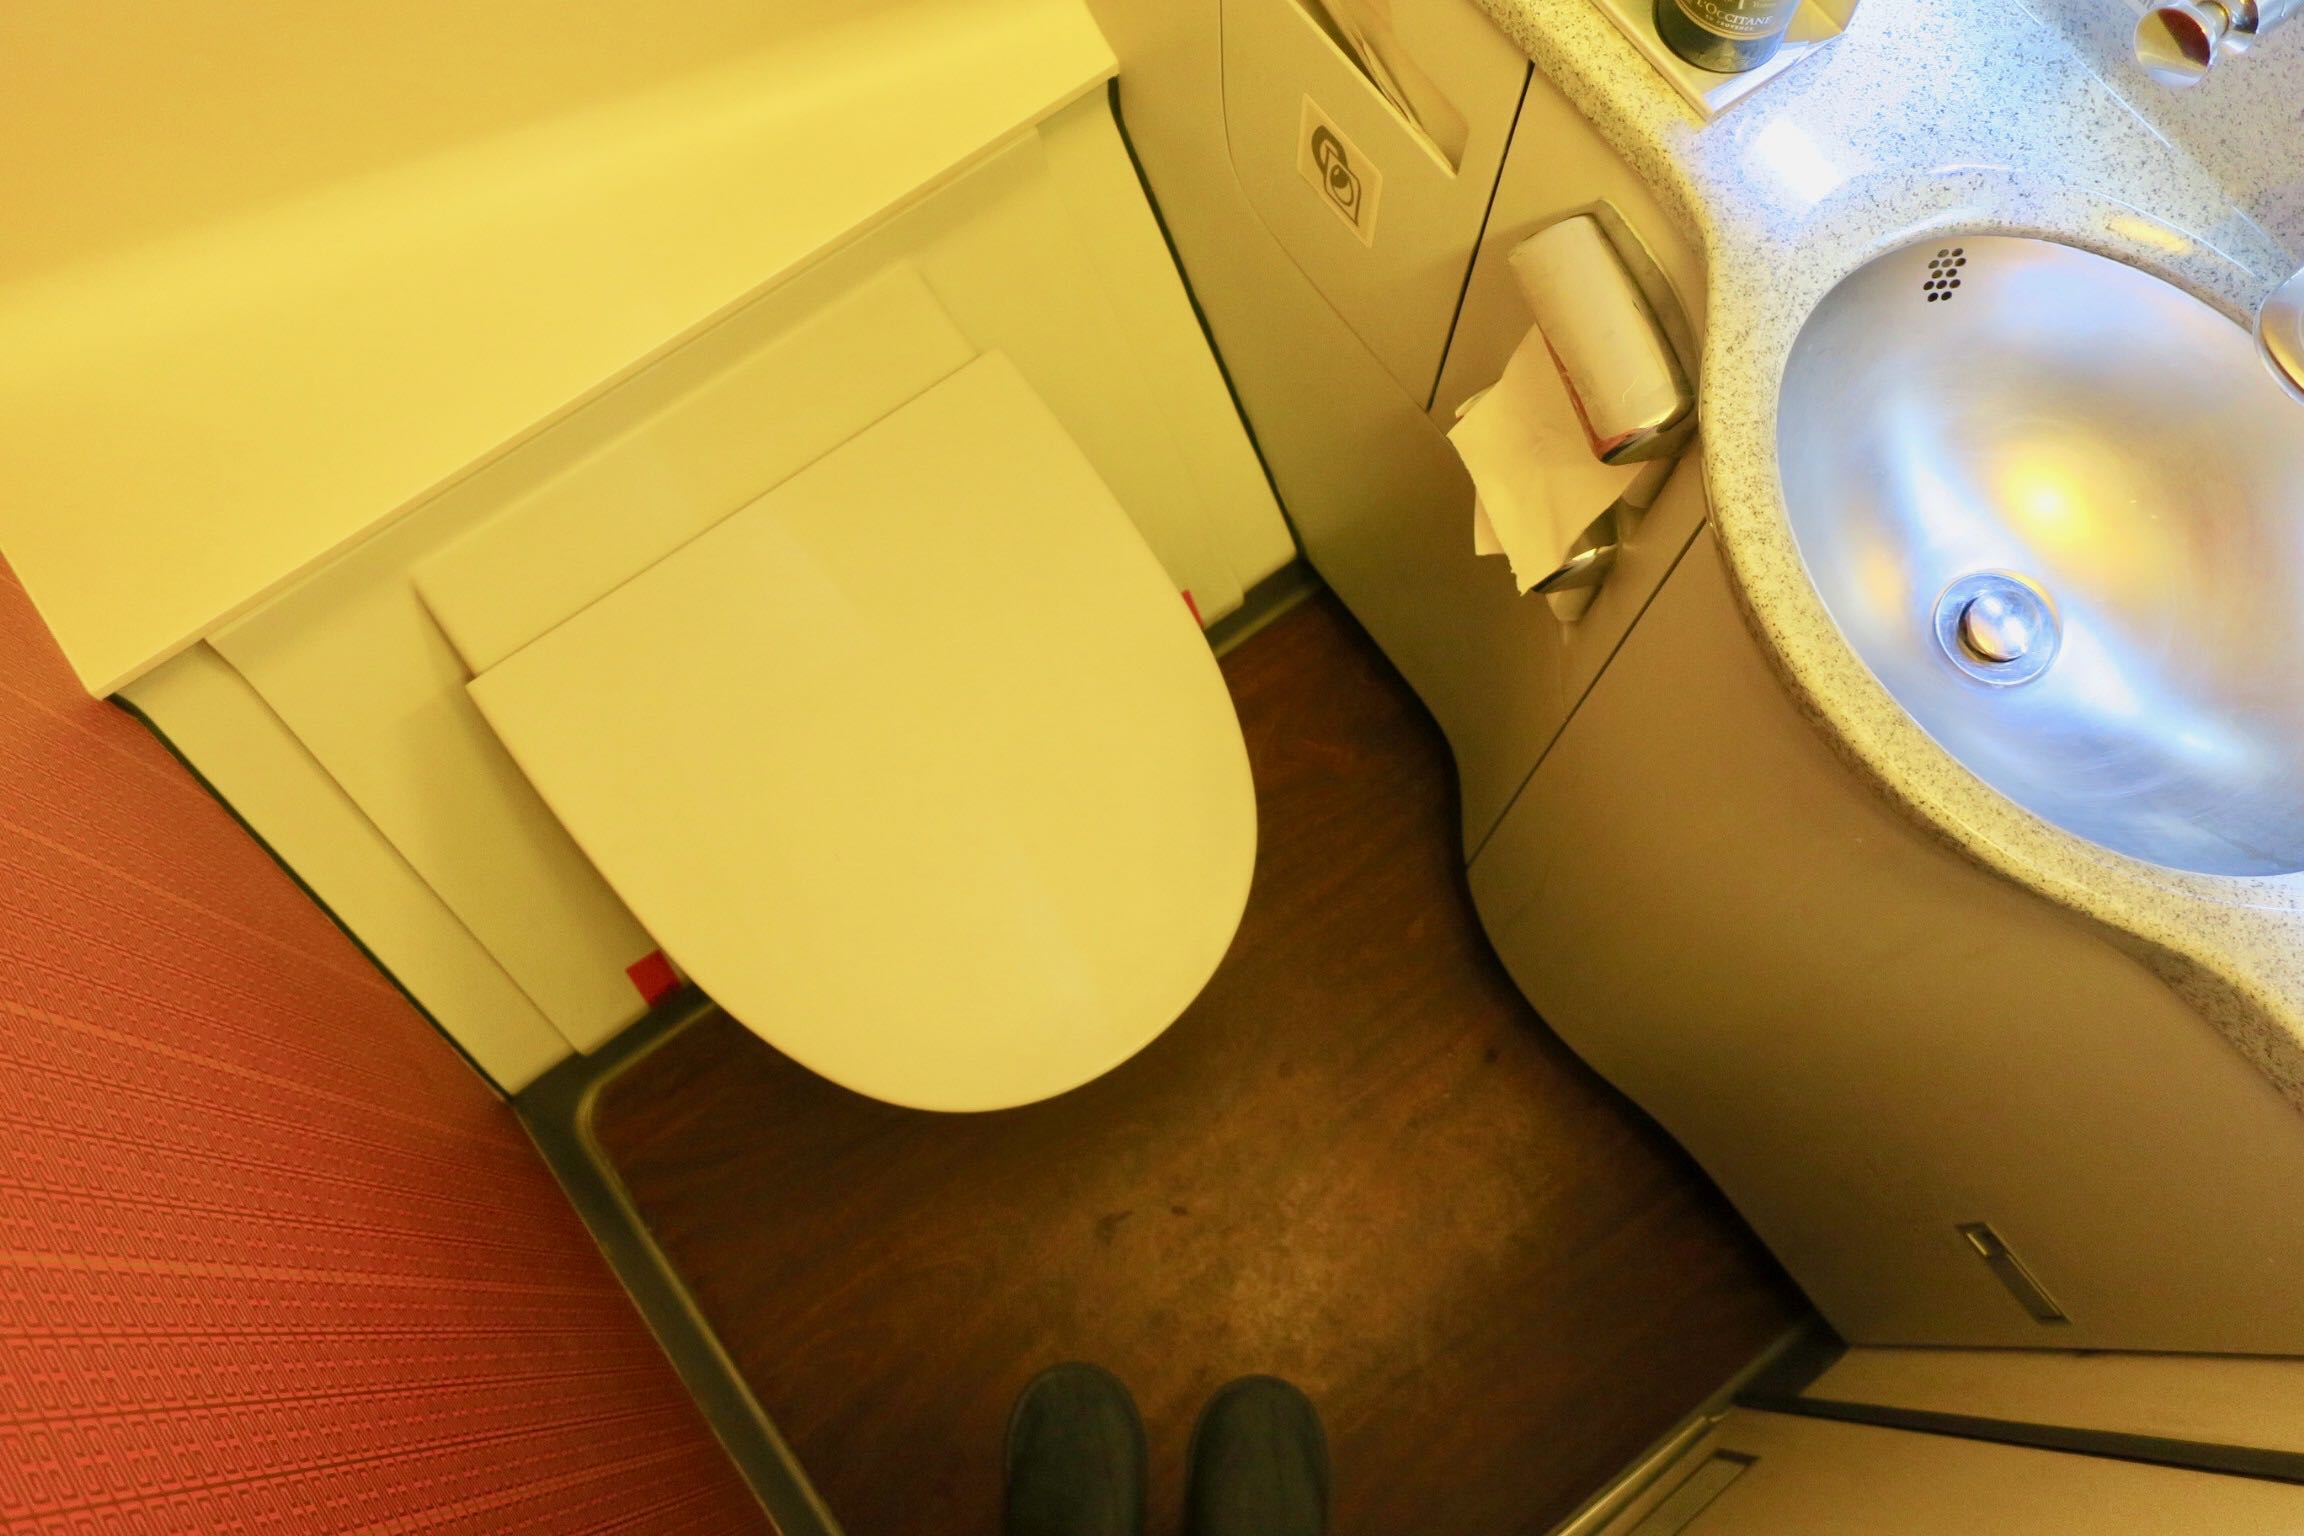 Hong Kong Airlines A330 Business Class lavatory